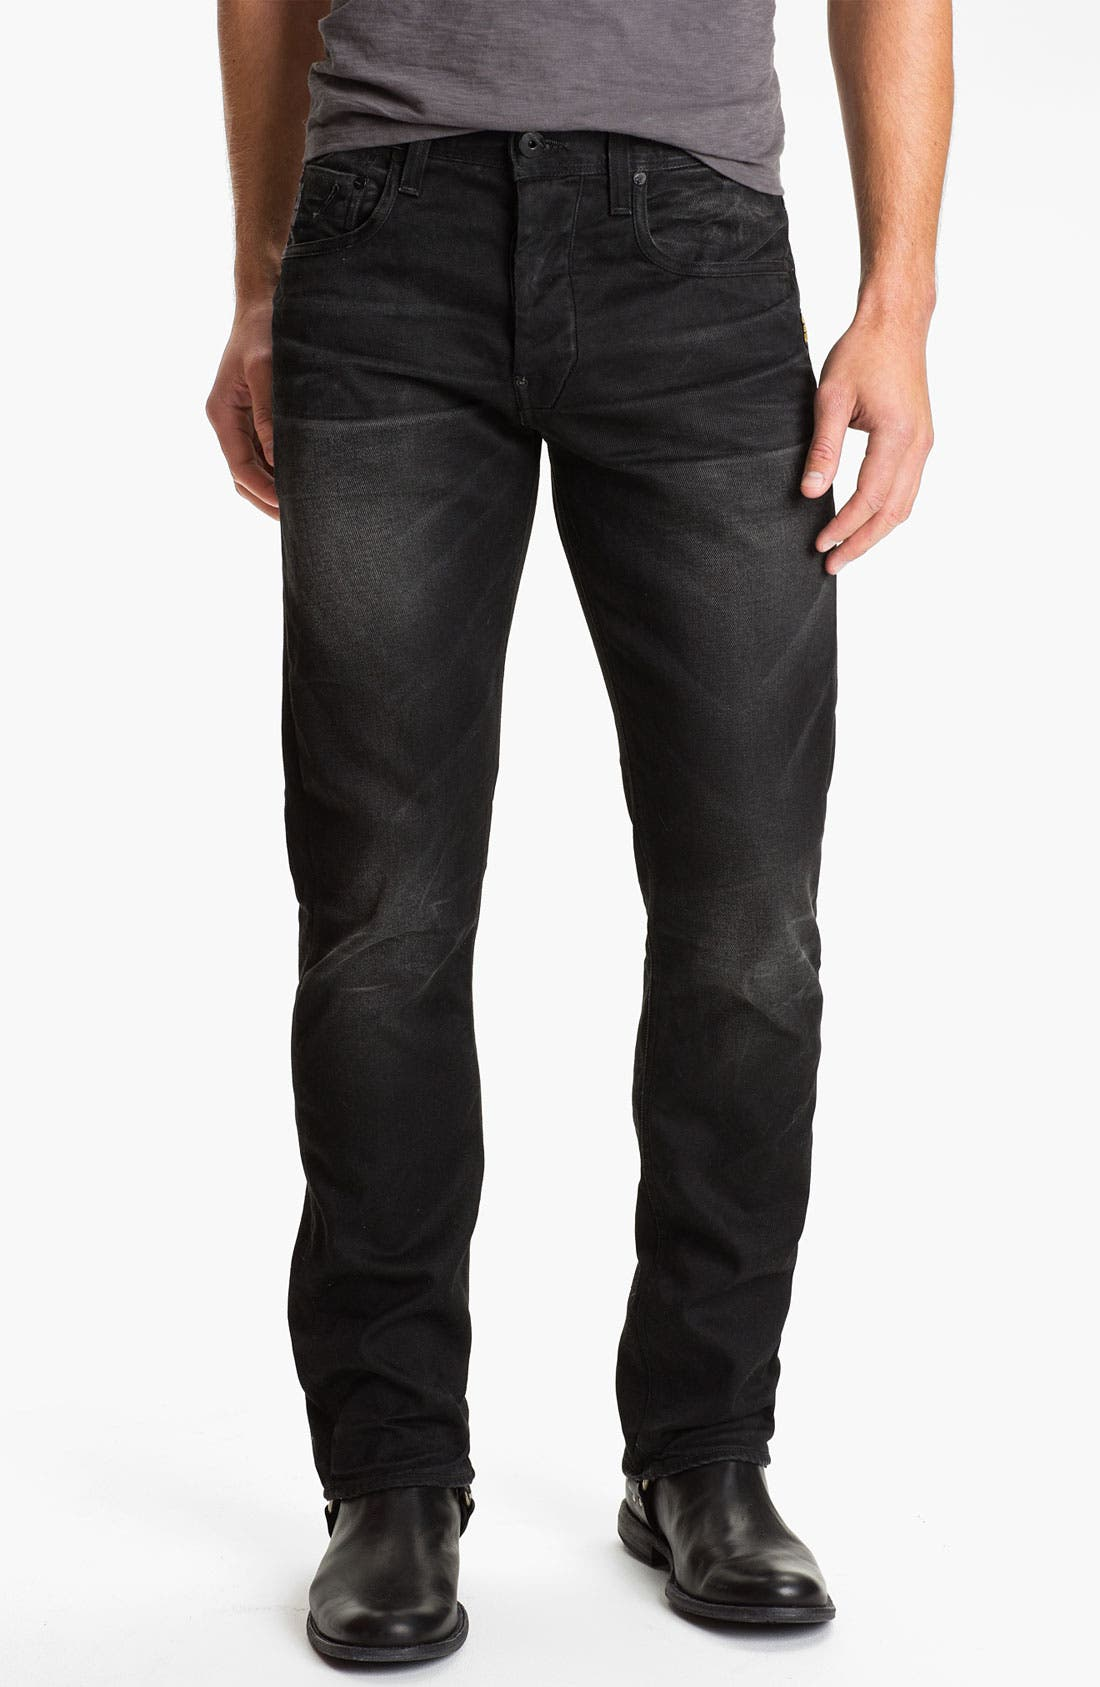 Alternate Image 2  - G-Star Raw 'Attacc' Straight Leg Jeans (Dark Aged)